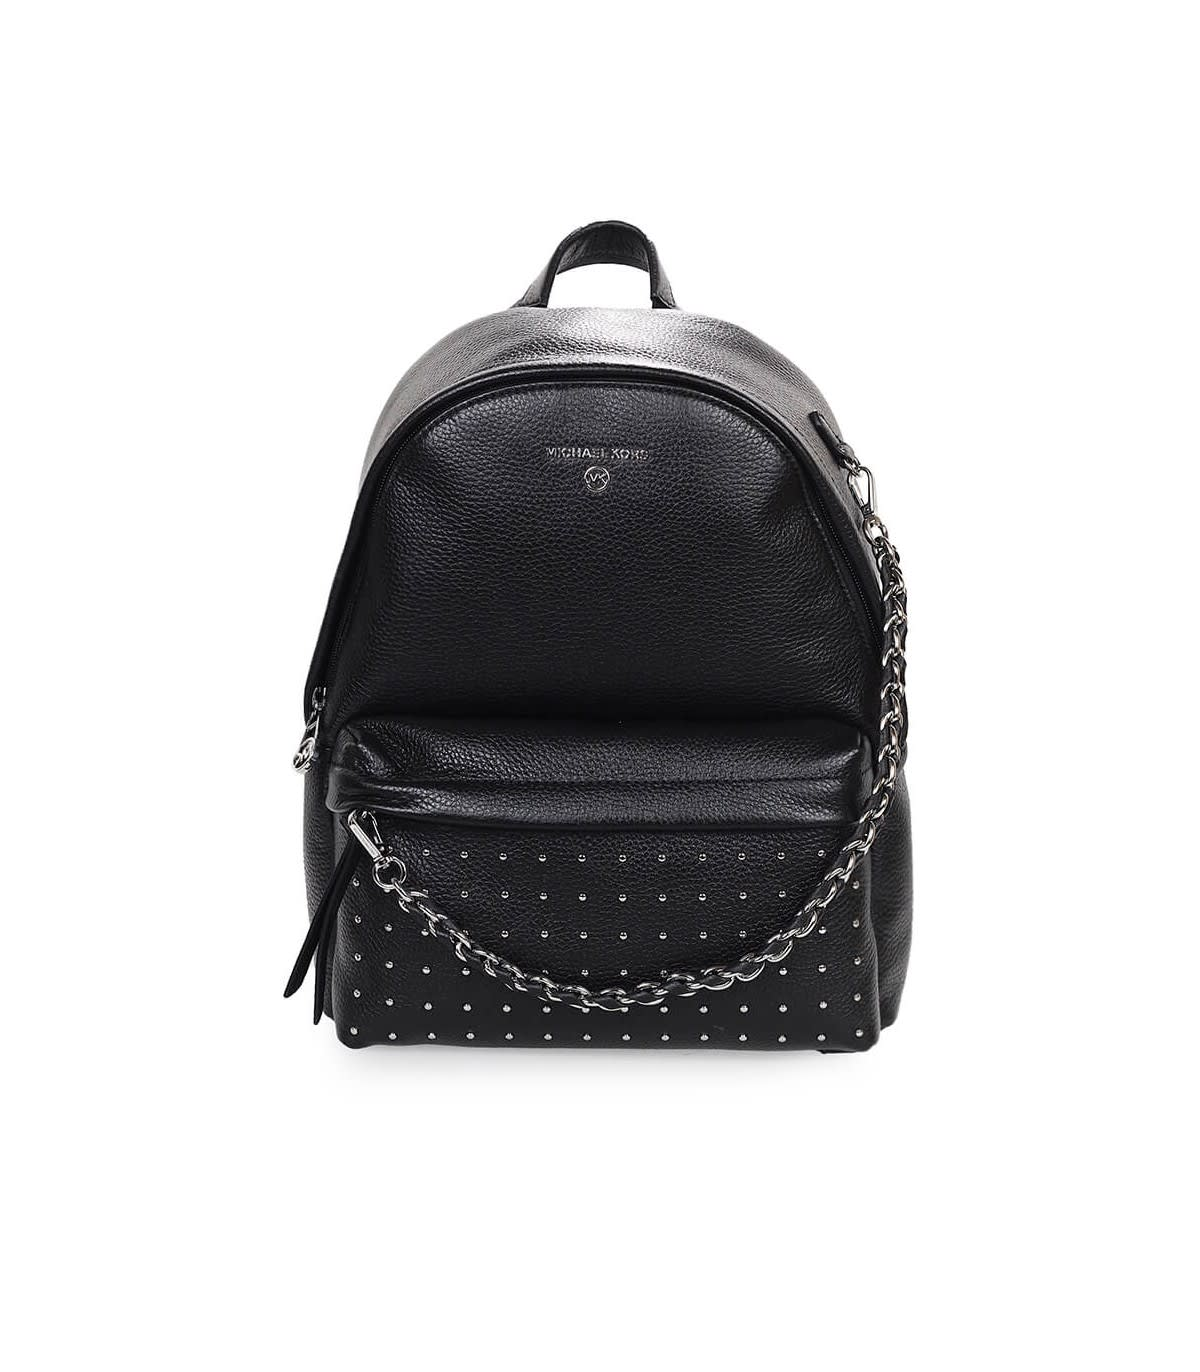 Michael Kors SLATER MEDIUM BLACK BACKPACK WITH STUDS